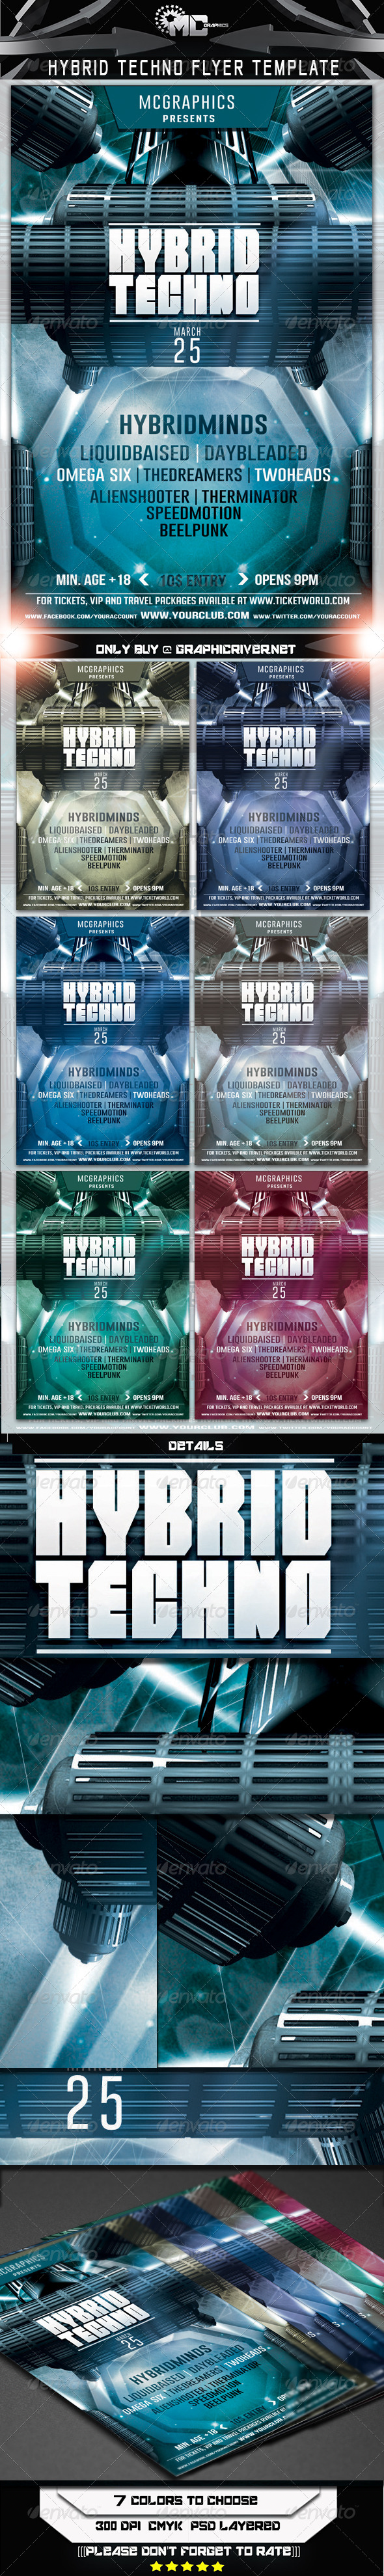 GraphicRiver Hybrid Techno Flyer Template 6791109